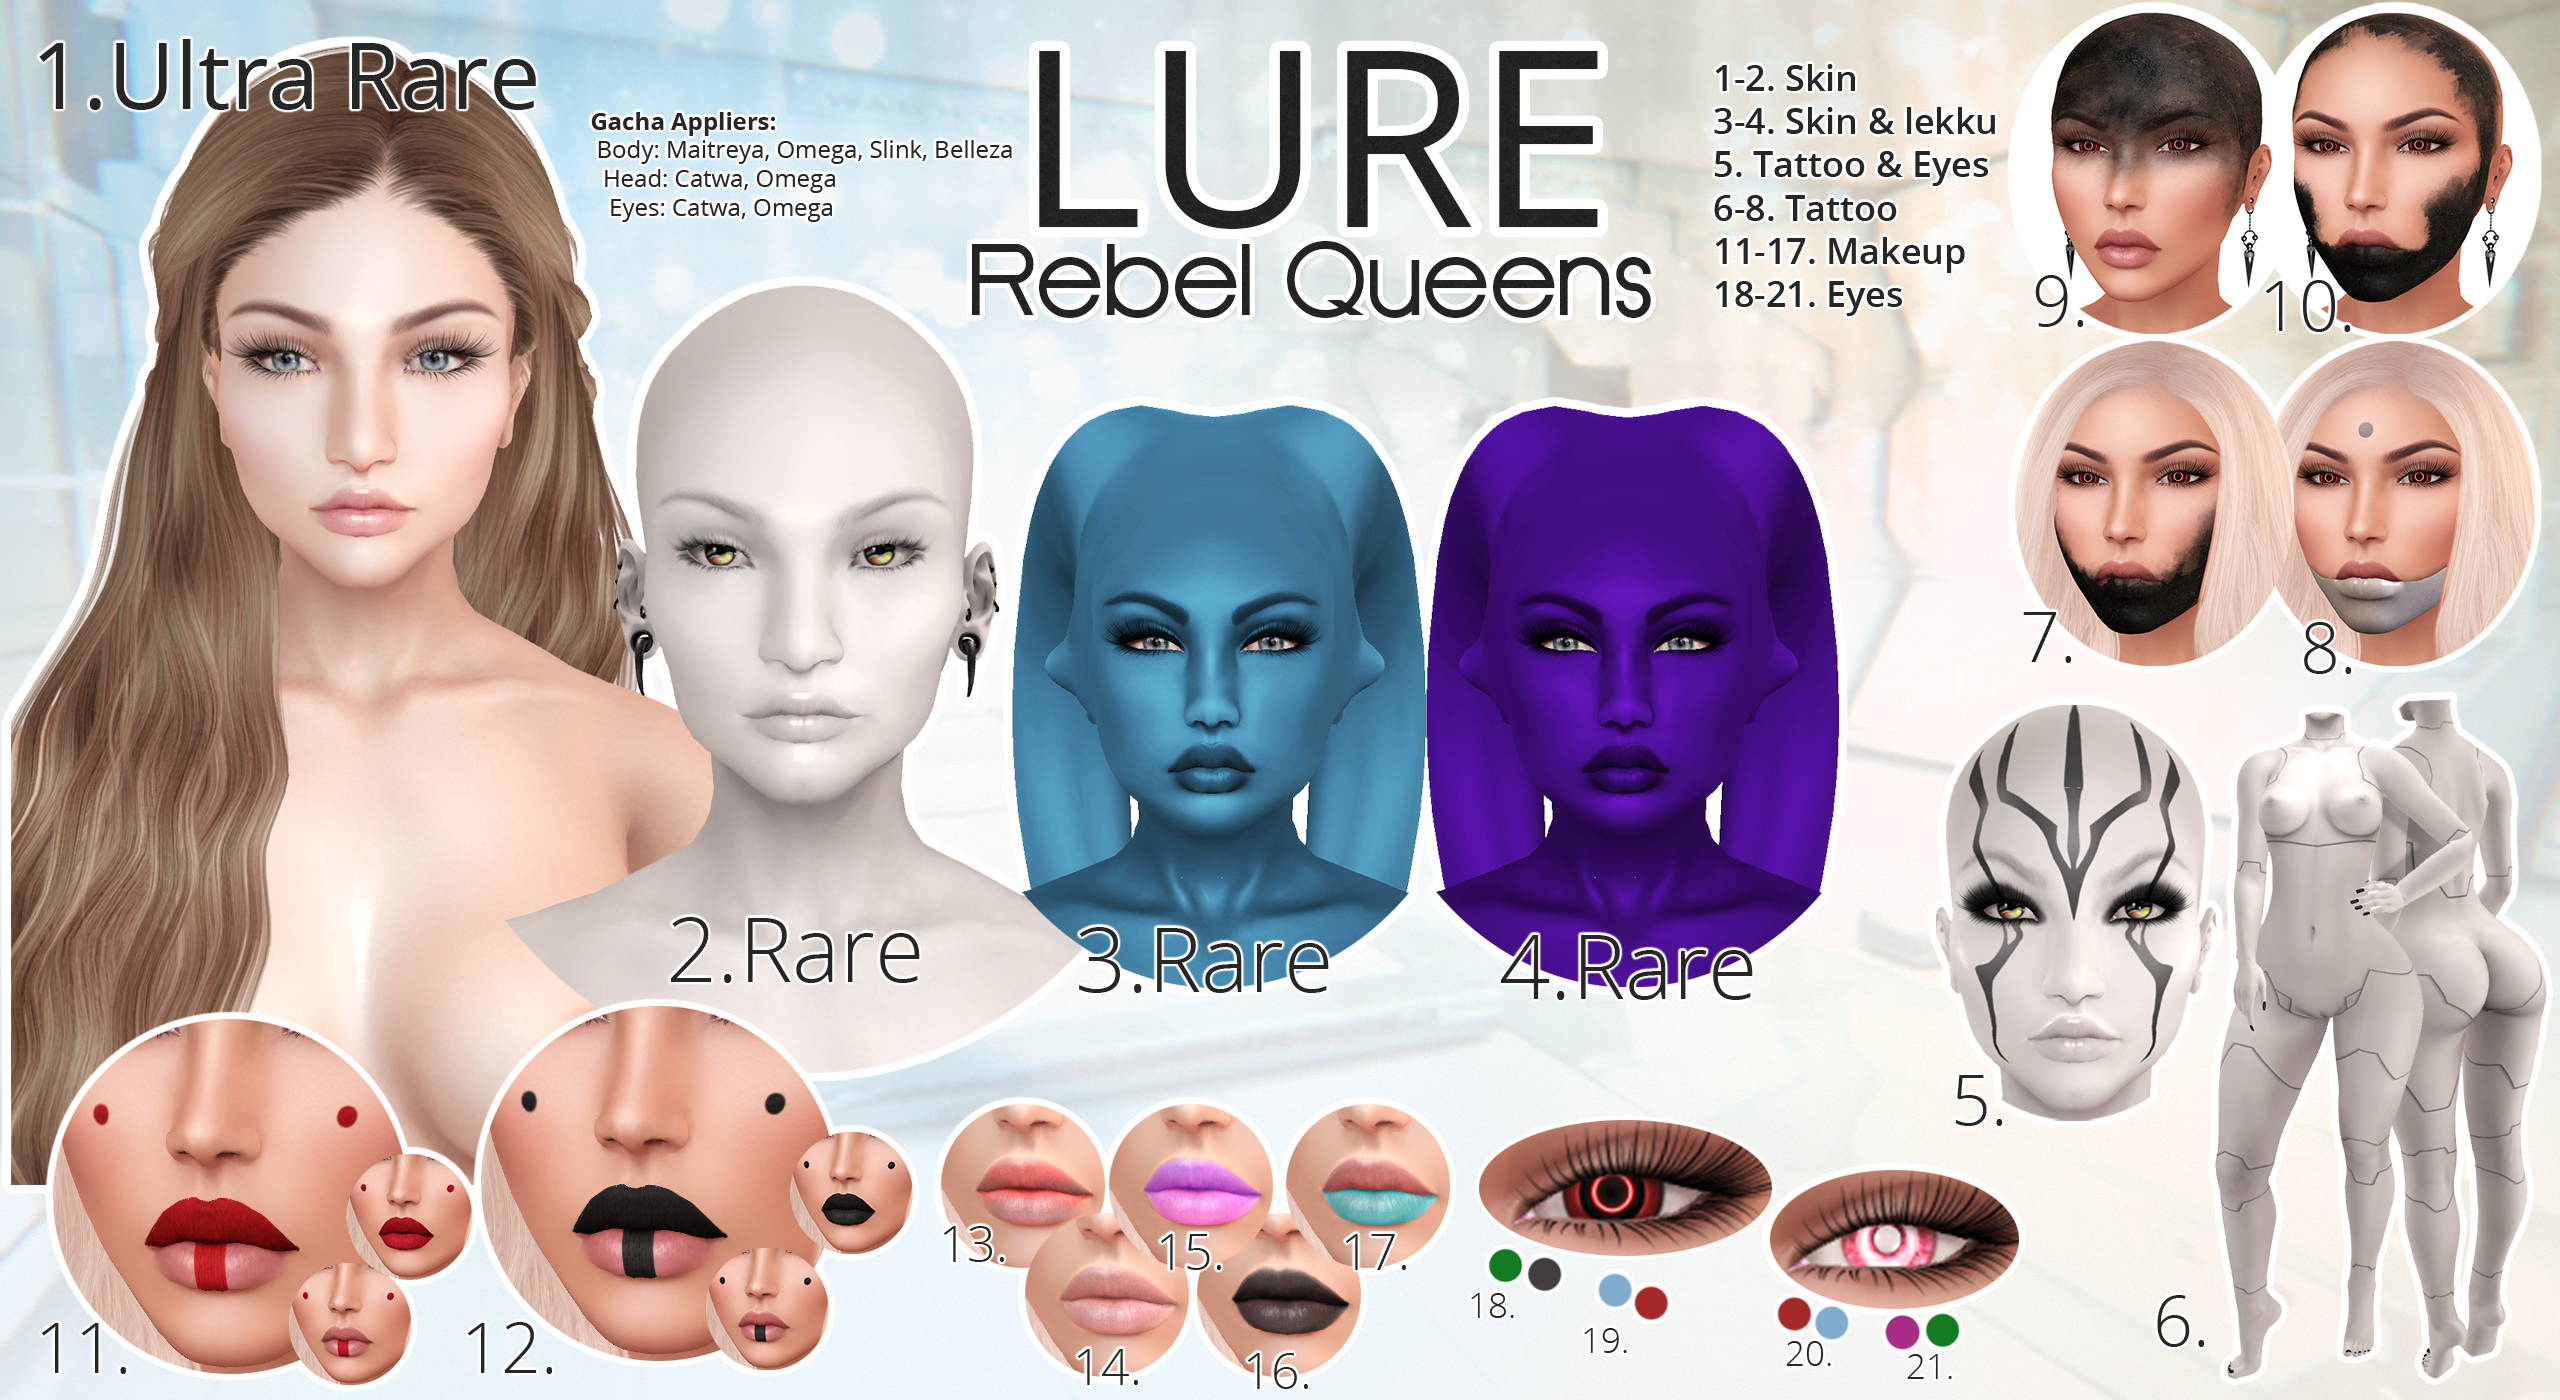 LURE: Rebel Queens Gacha